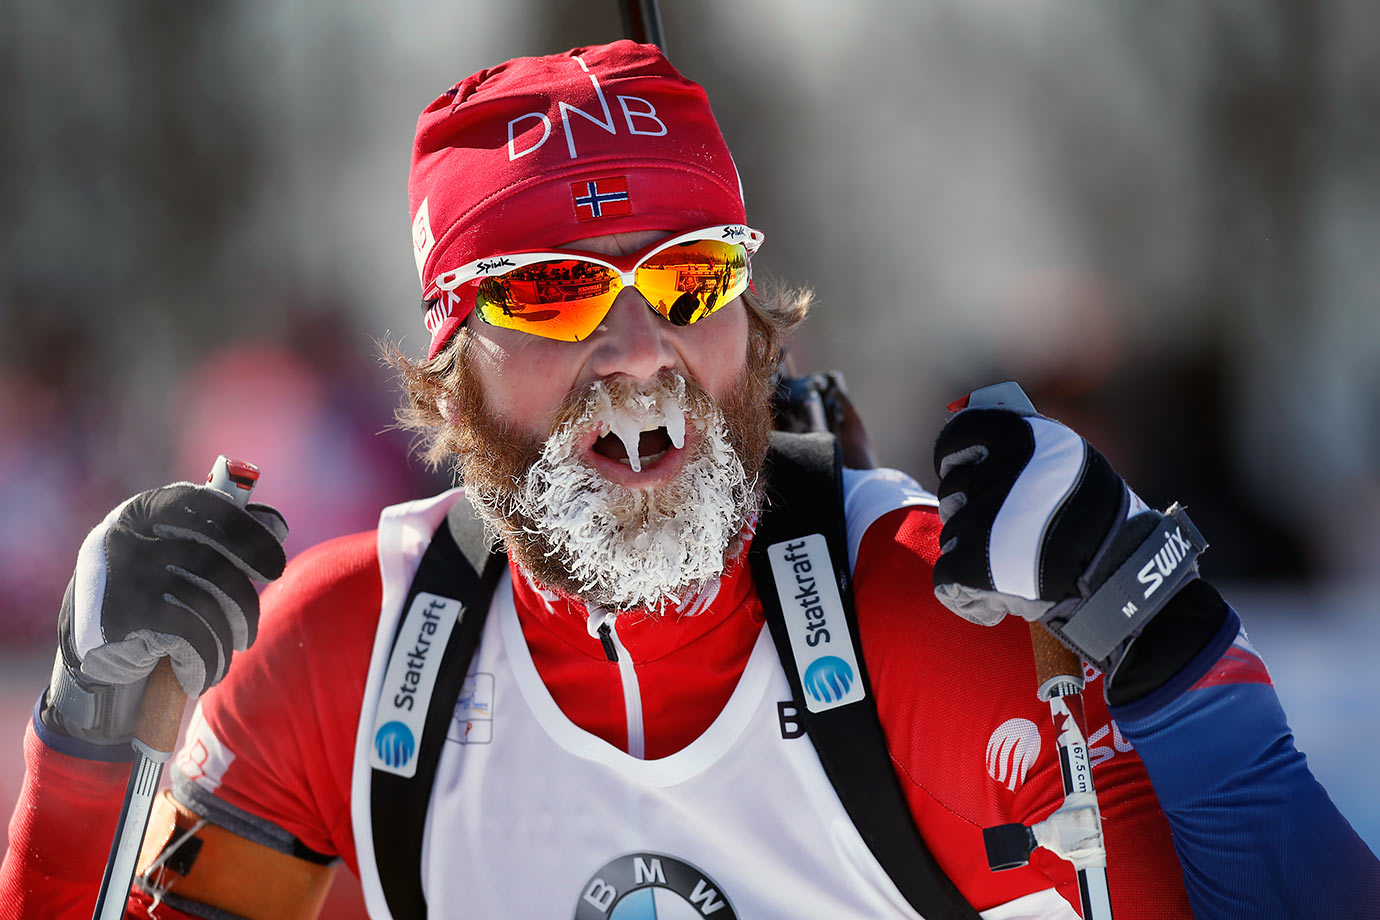 Alexander Os of Norway catches his breath after competing in 0-degree F (-18 C) temperature in the 12.5 km pursuit competition during the World Cup Biathlon in Presque Isle, Maine.